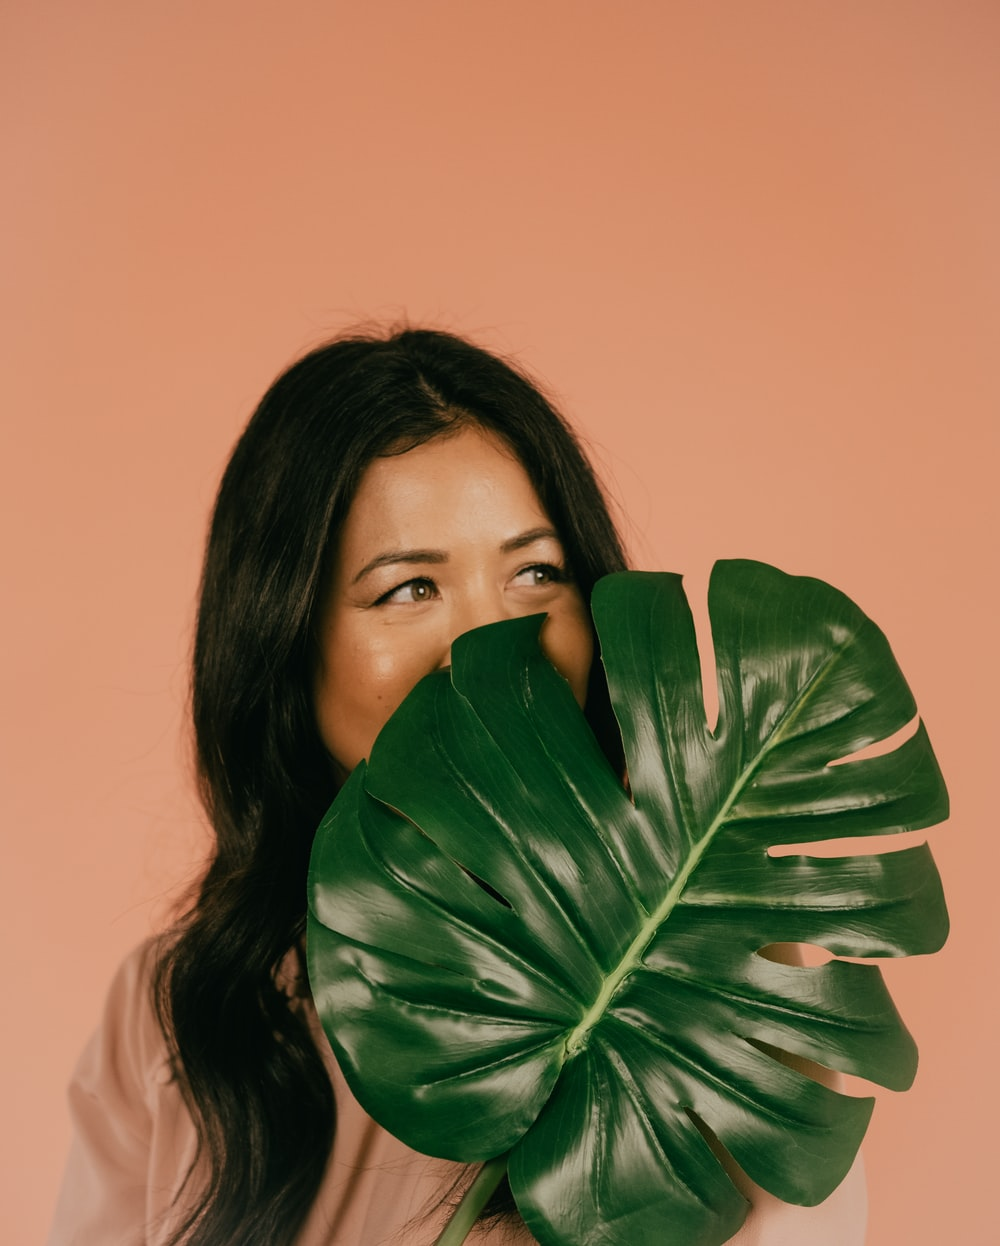 woman in white shirt covering her mouth with green leaf